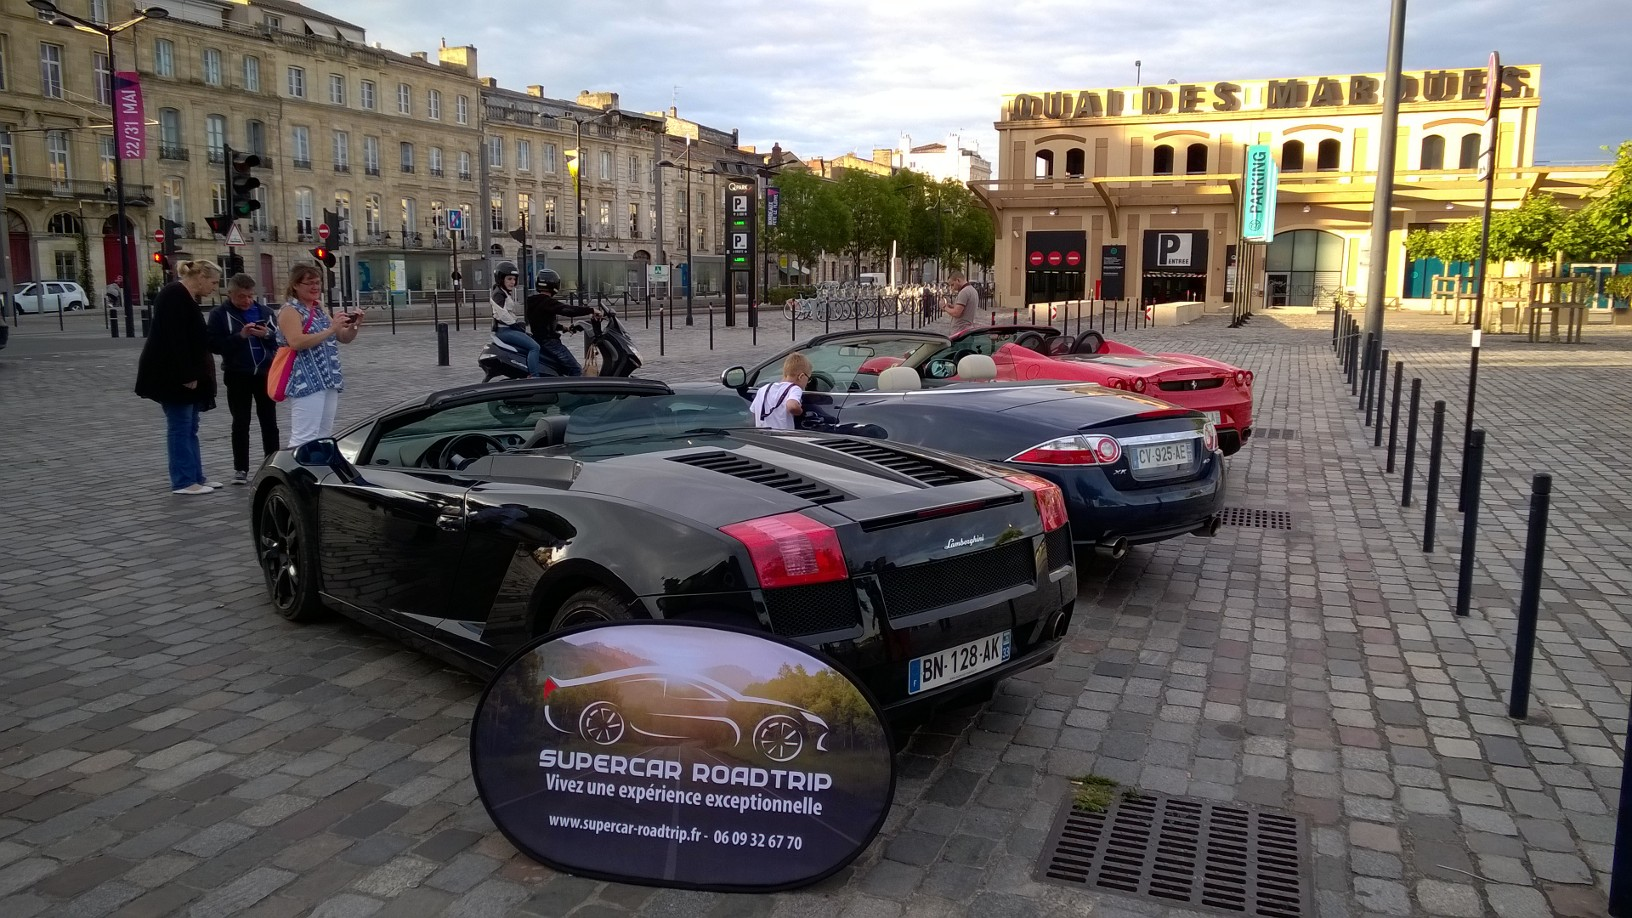 SuperCar RoadTrip Bordeaux Location Ferrari Lamborghini Jaguar Car Rental